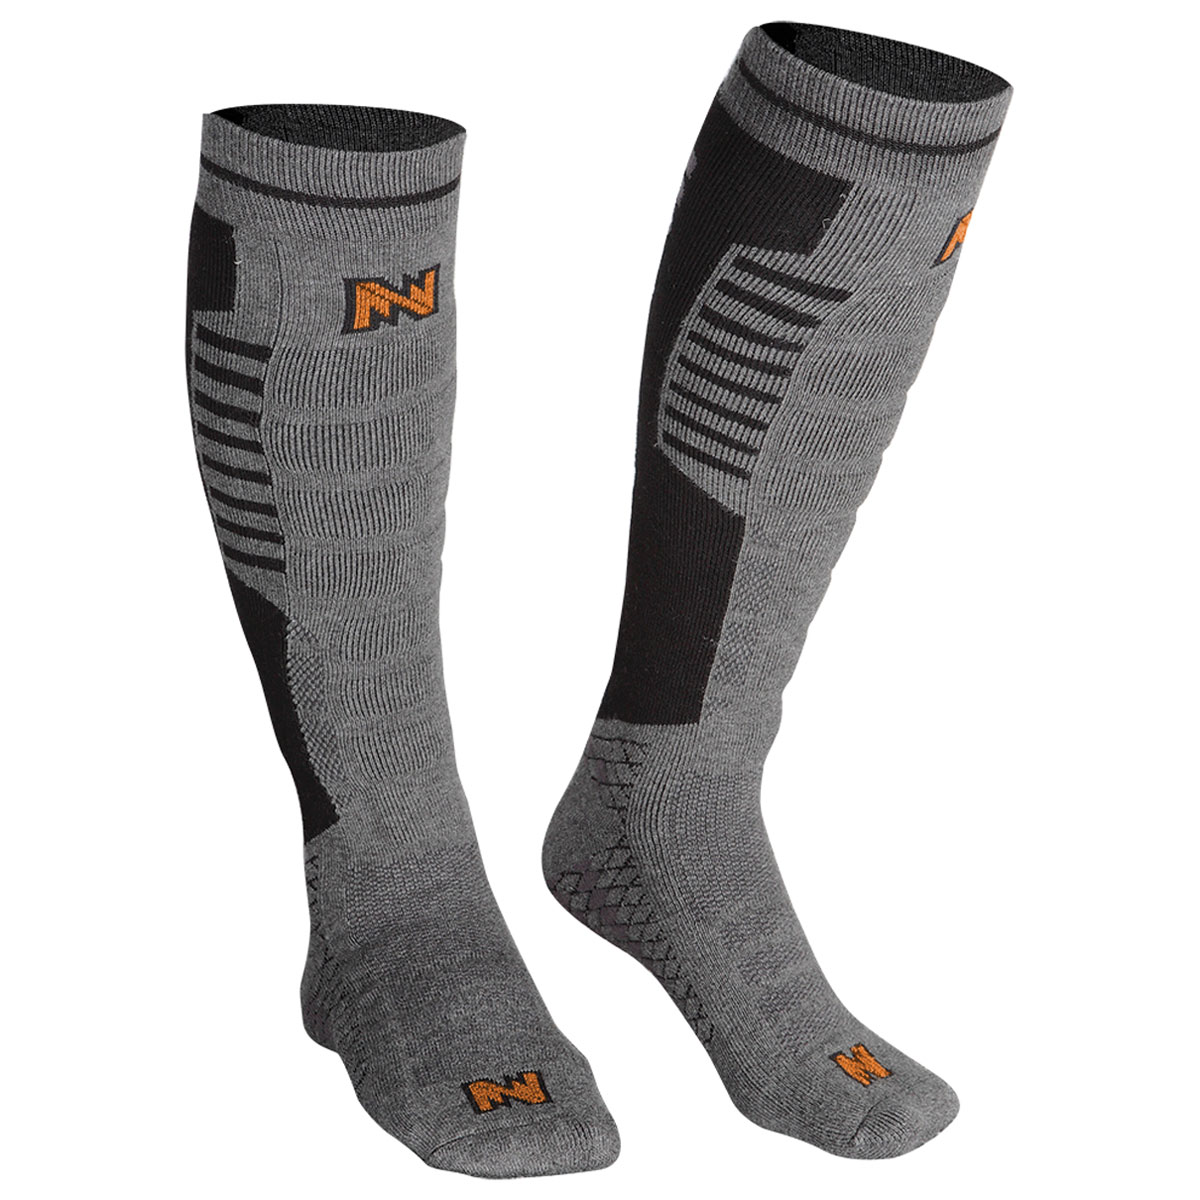 Mobile Warming Performance Heated Gray/Black Socks